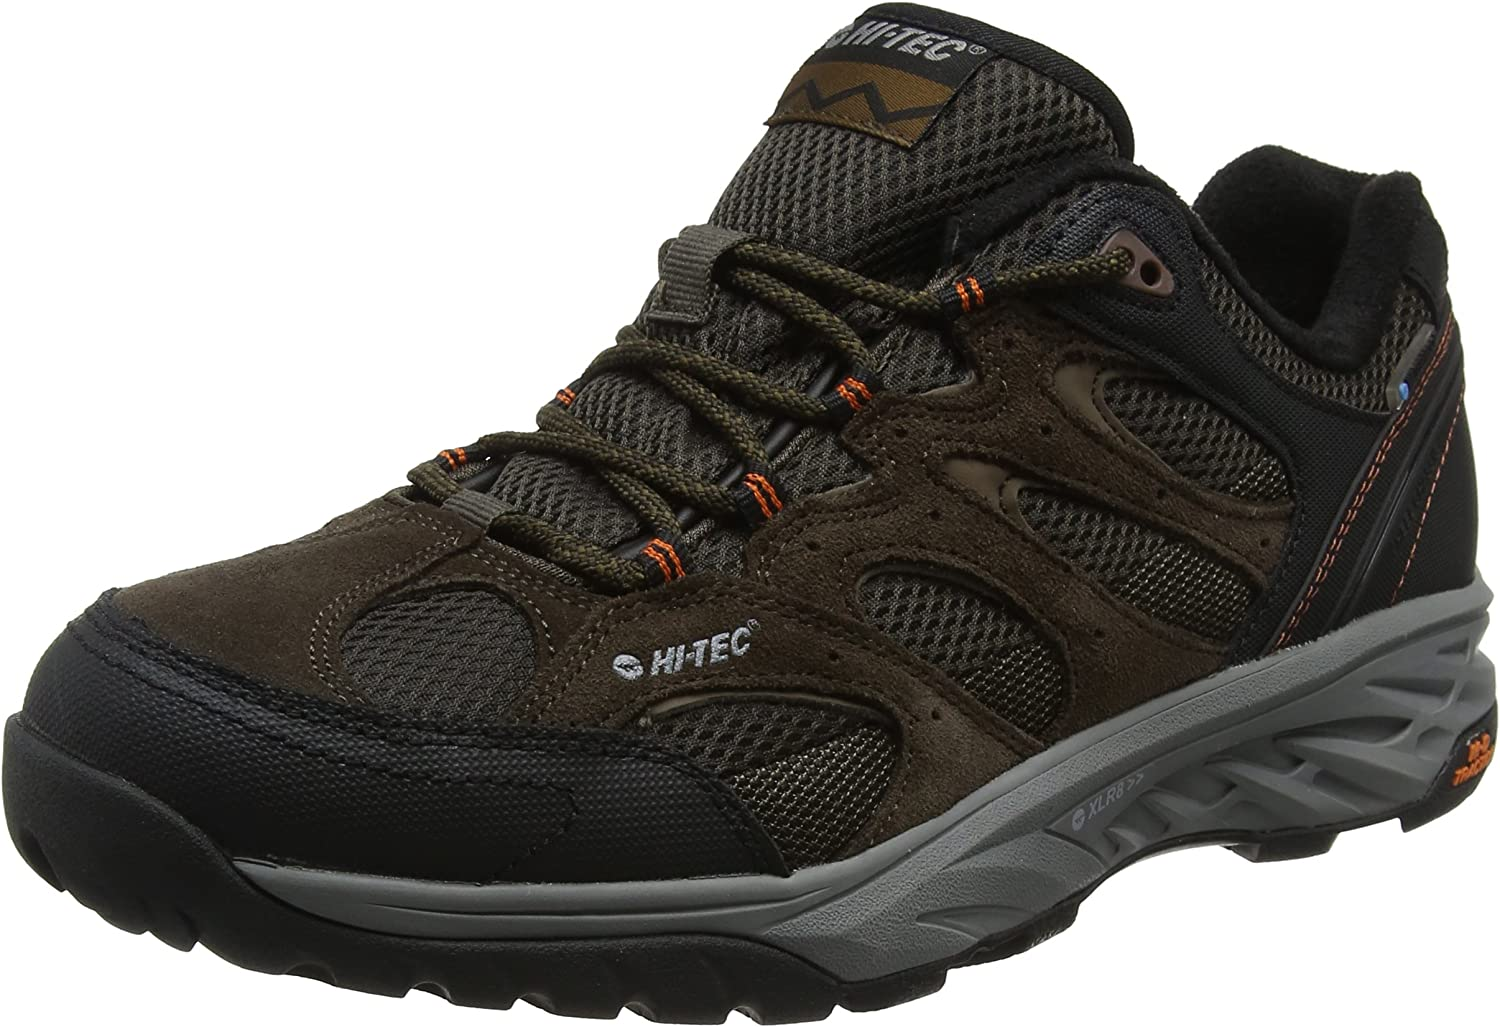 Hi-Tec Wild-Fire Low I Waterproof Walking shoes - SS19